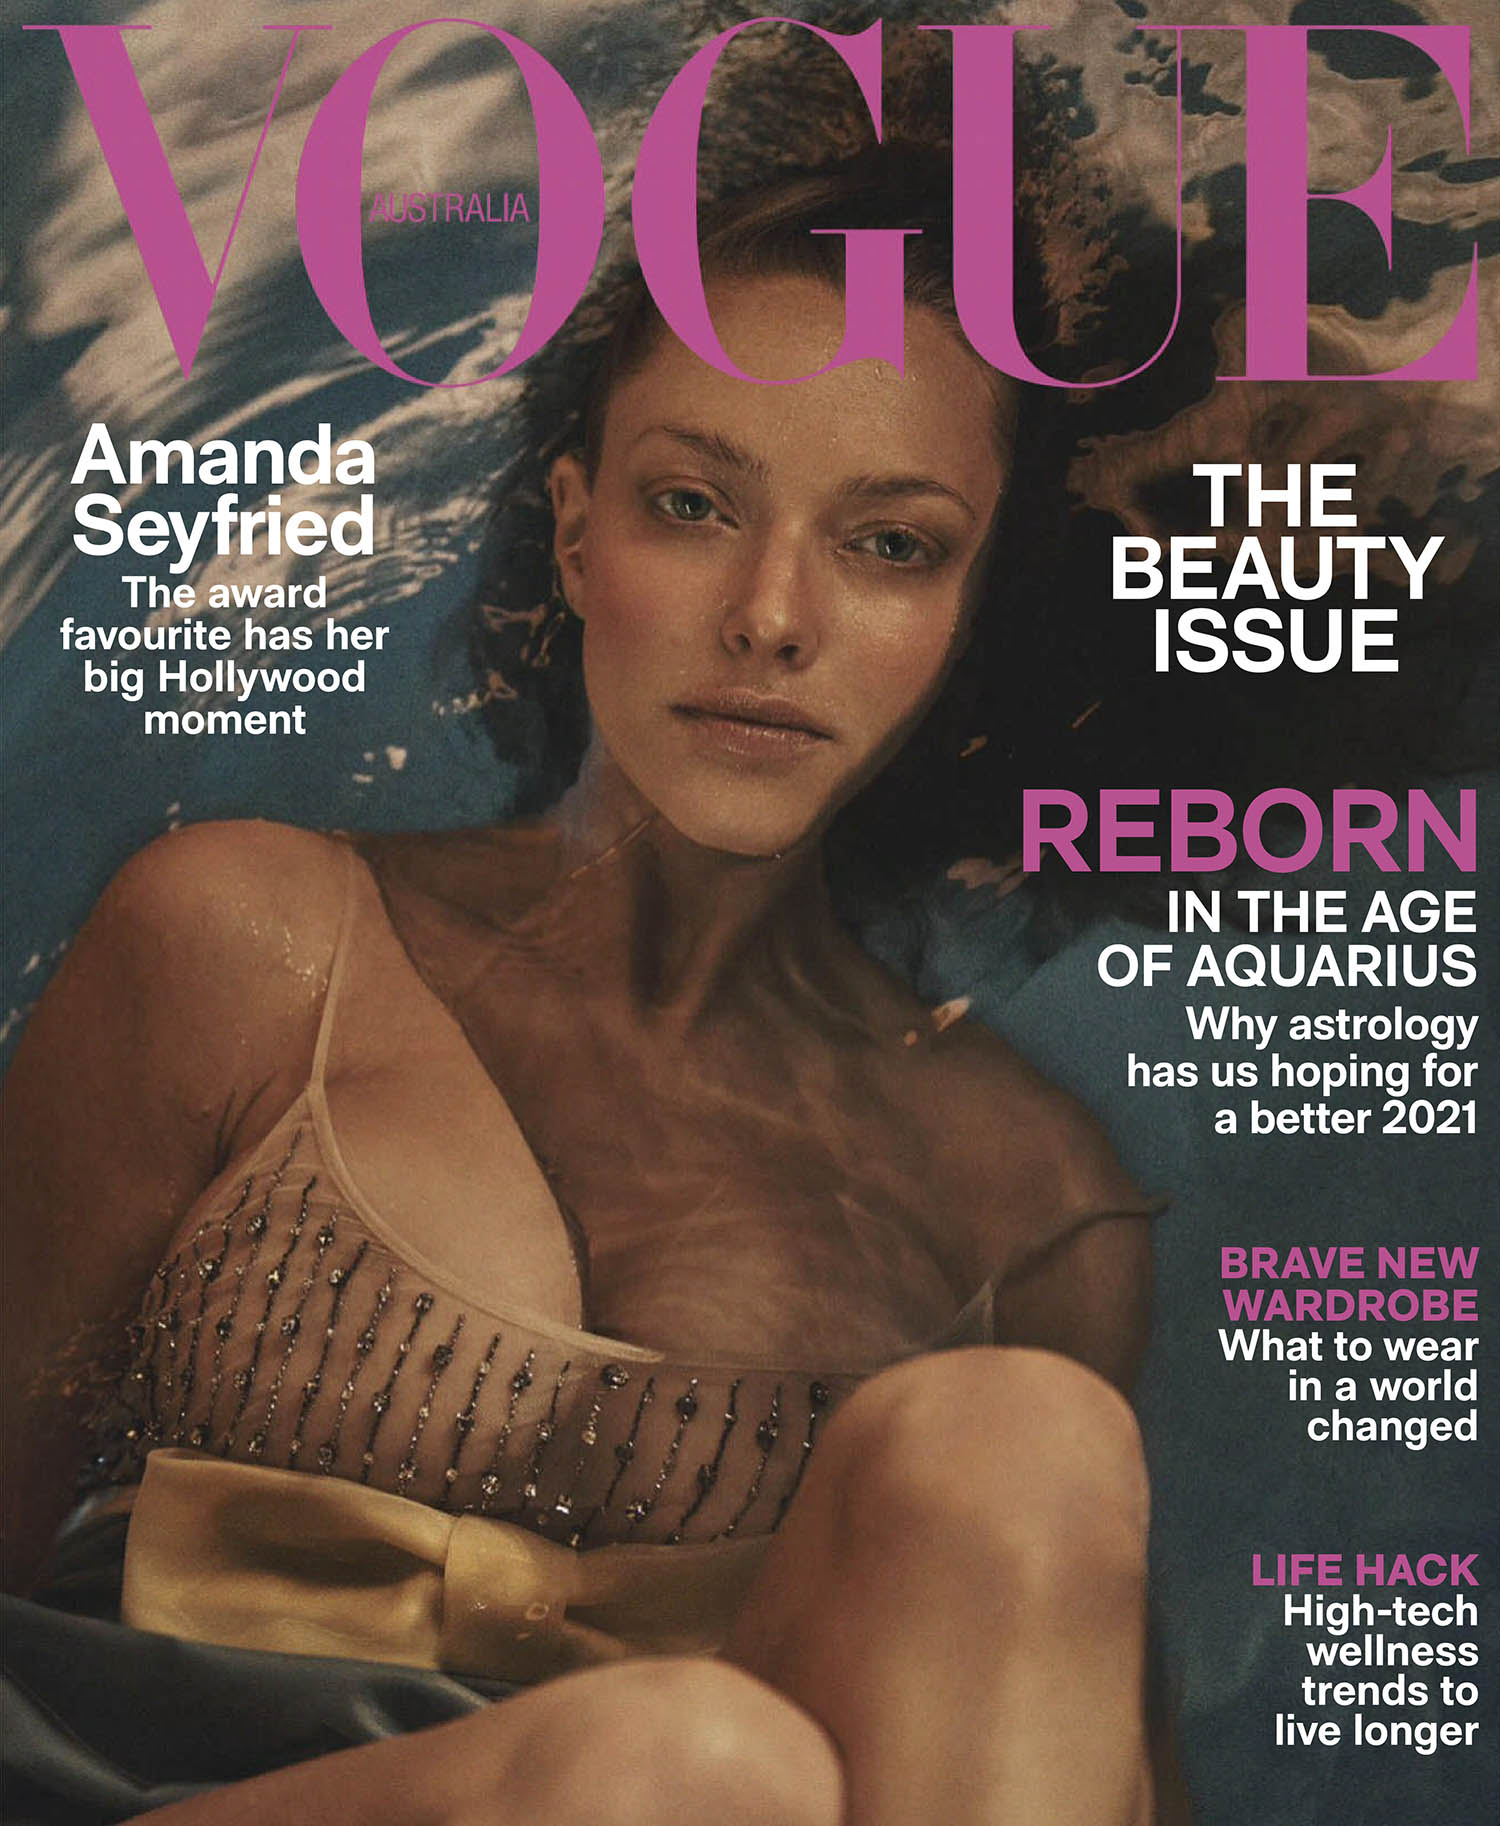 Amanda Seyfried covers Vogue Australia February 2021 by Lachlan Bailey